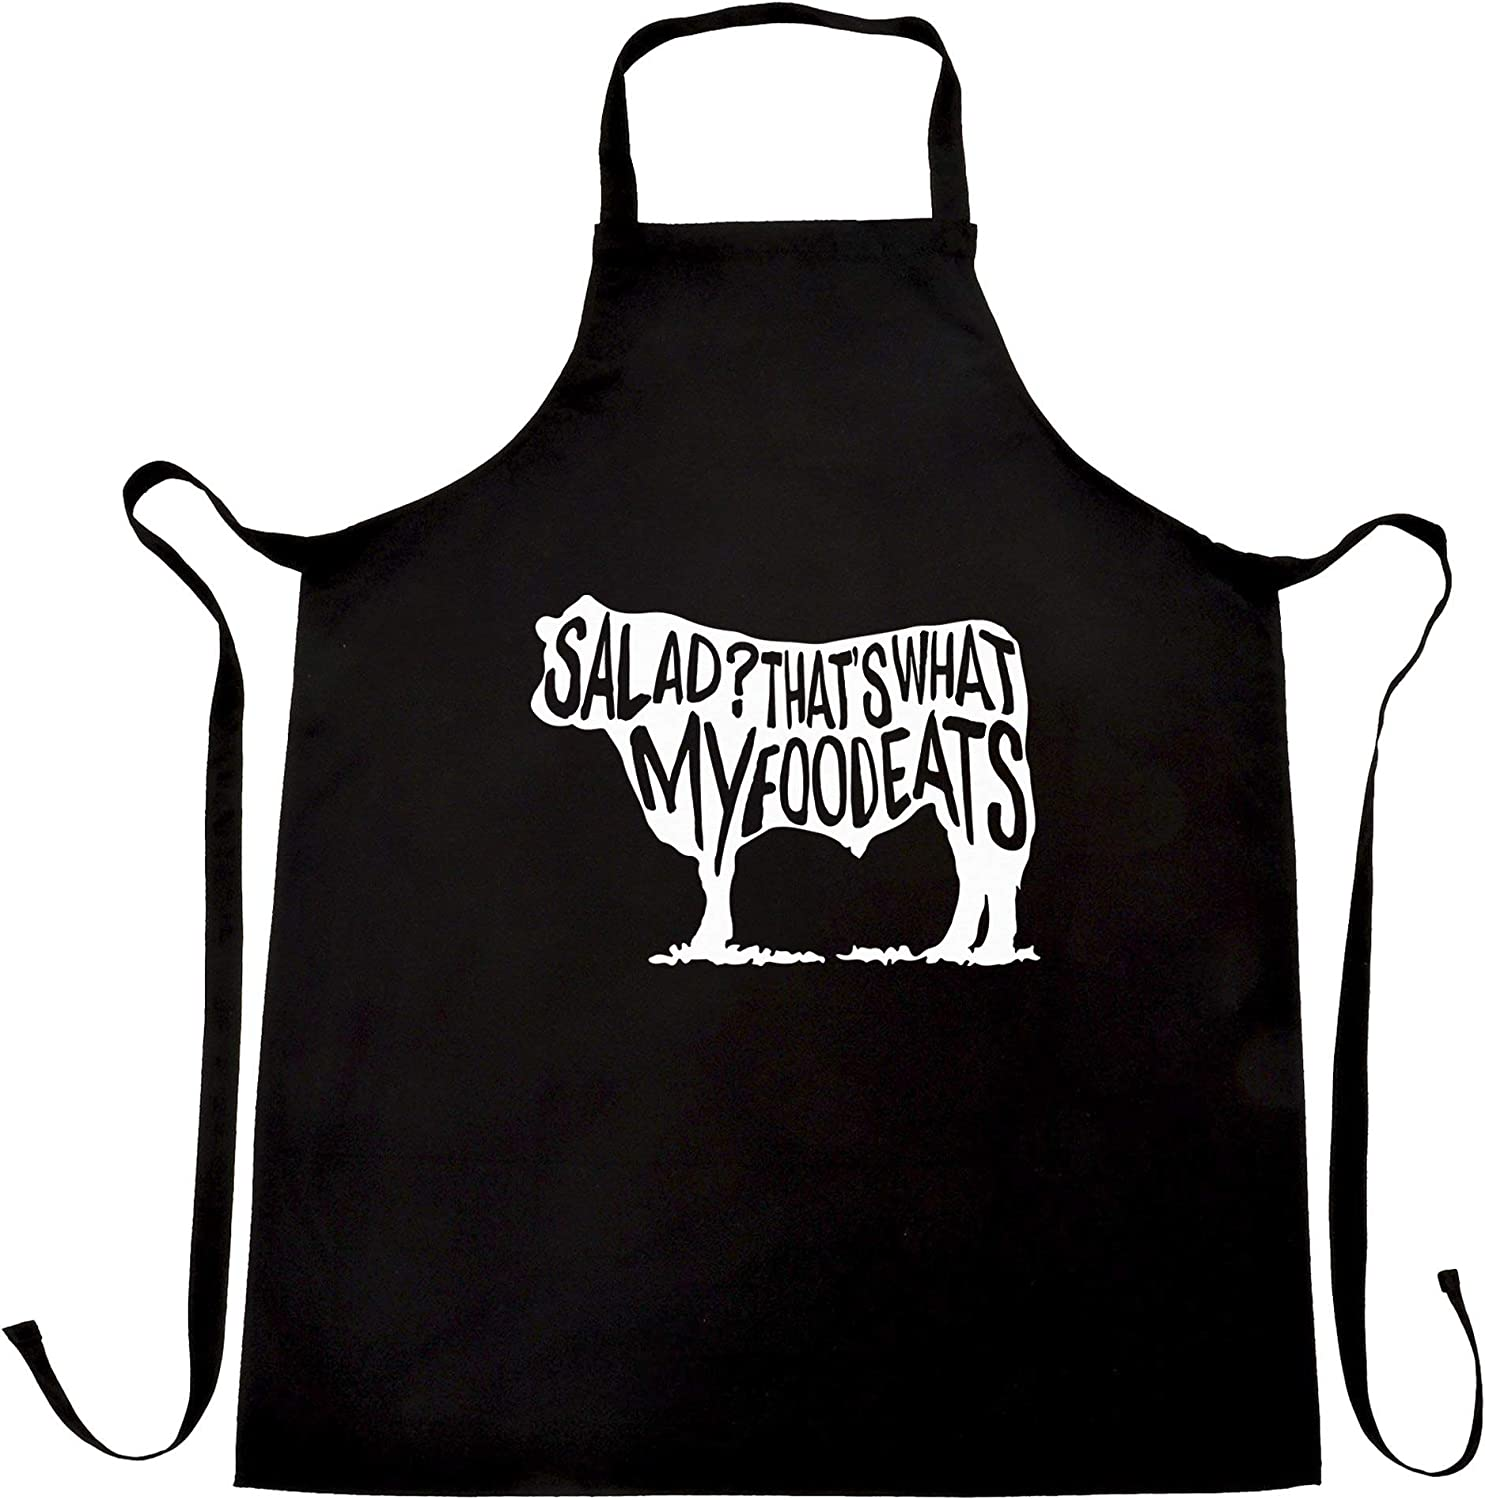 Novelty Chef's Apron Salad? That's What My Food Eats Slogan Black One Size